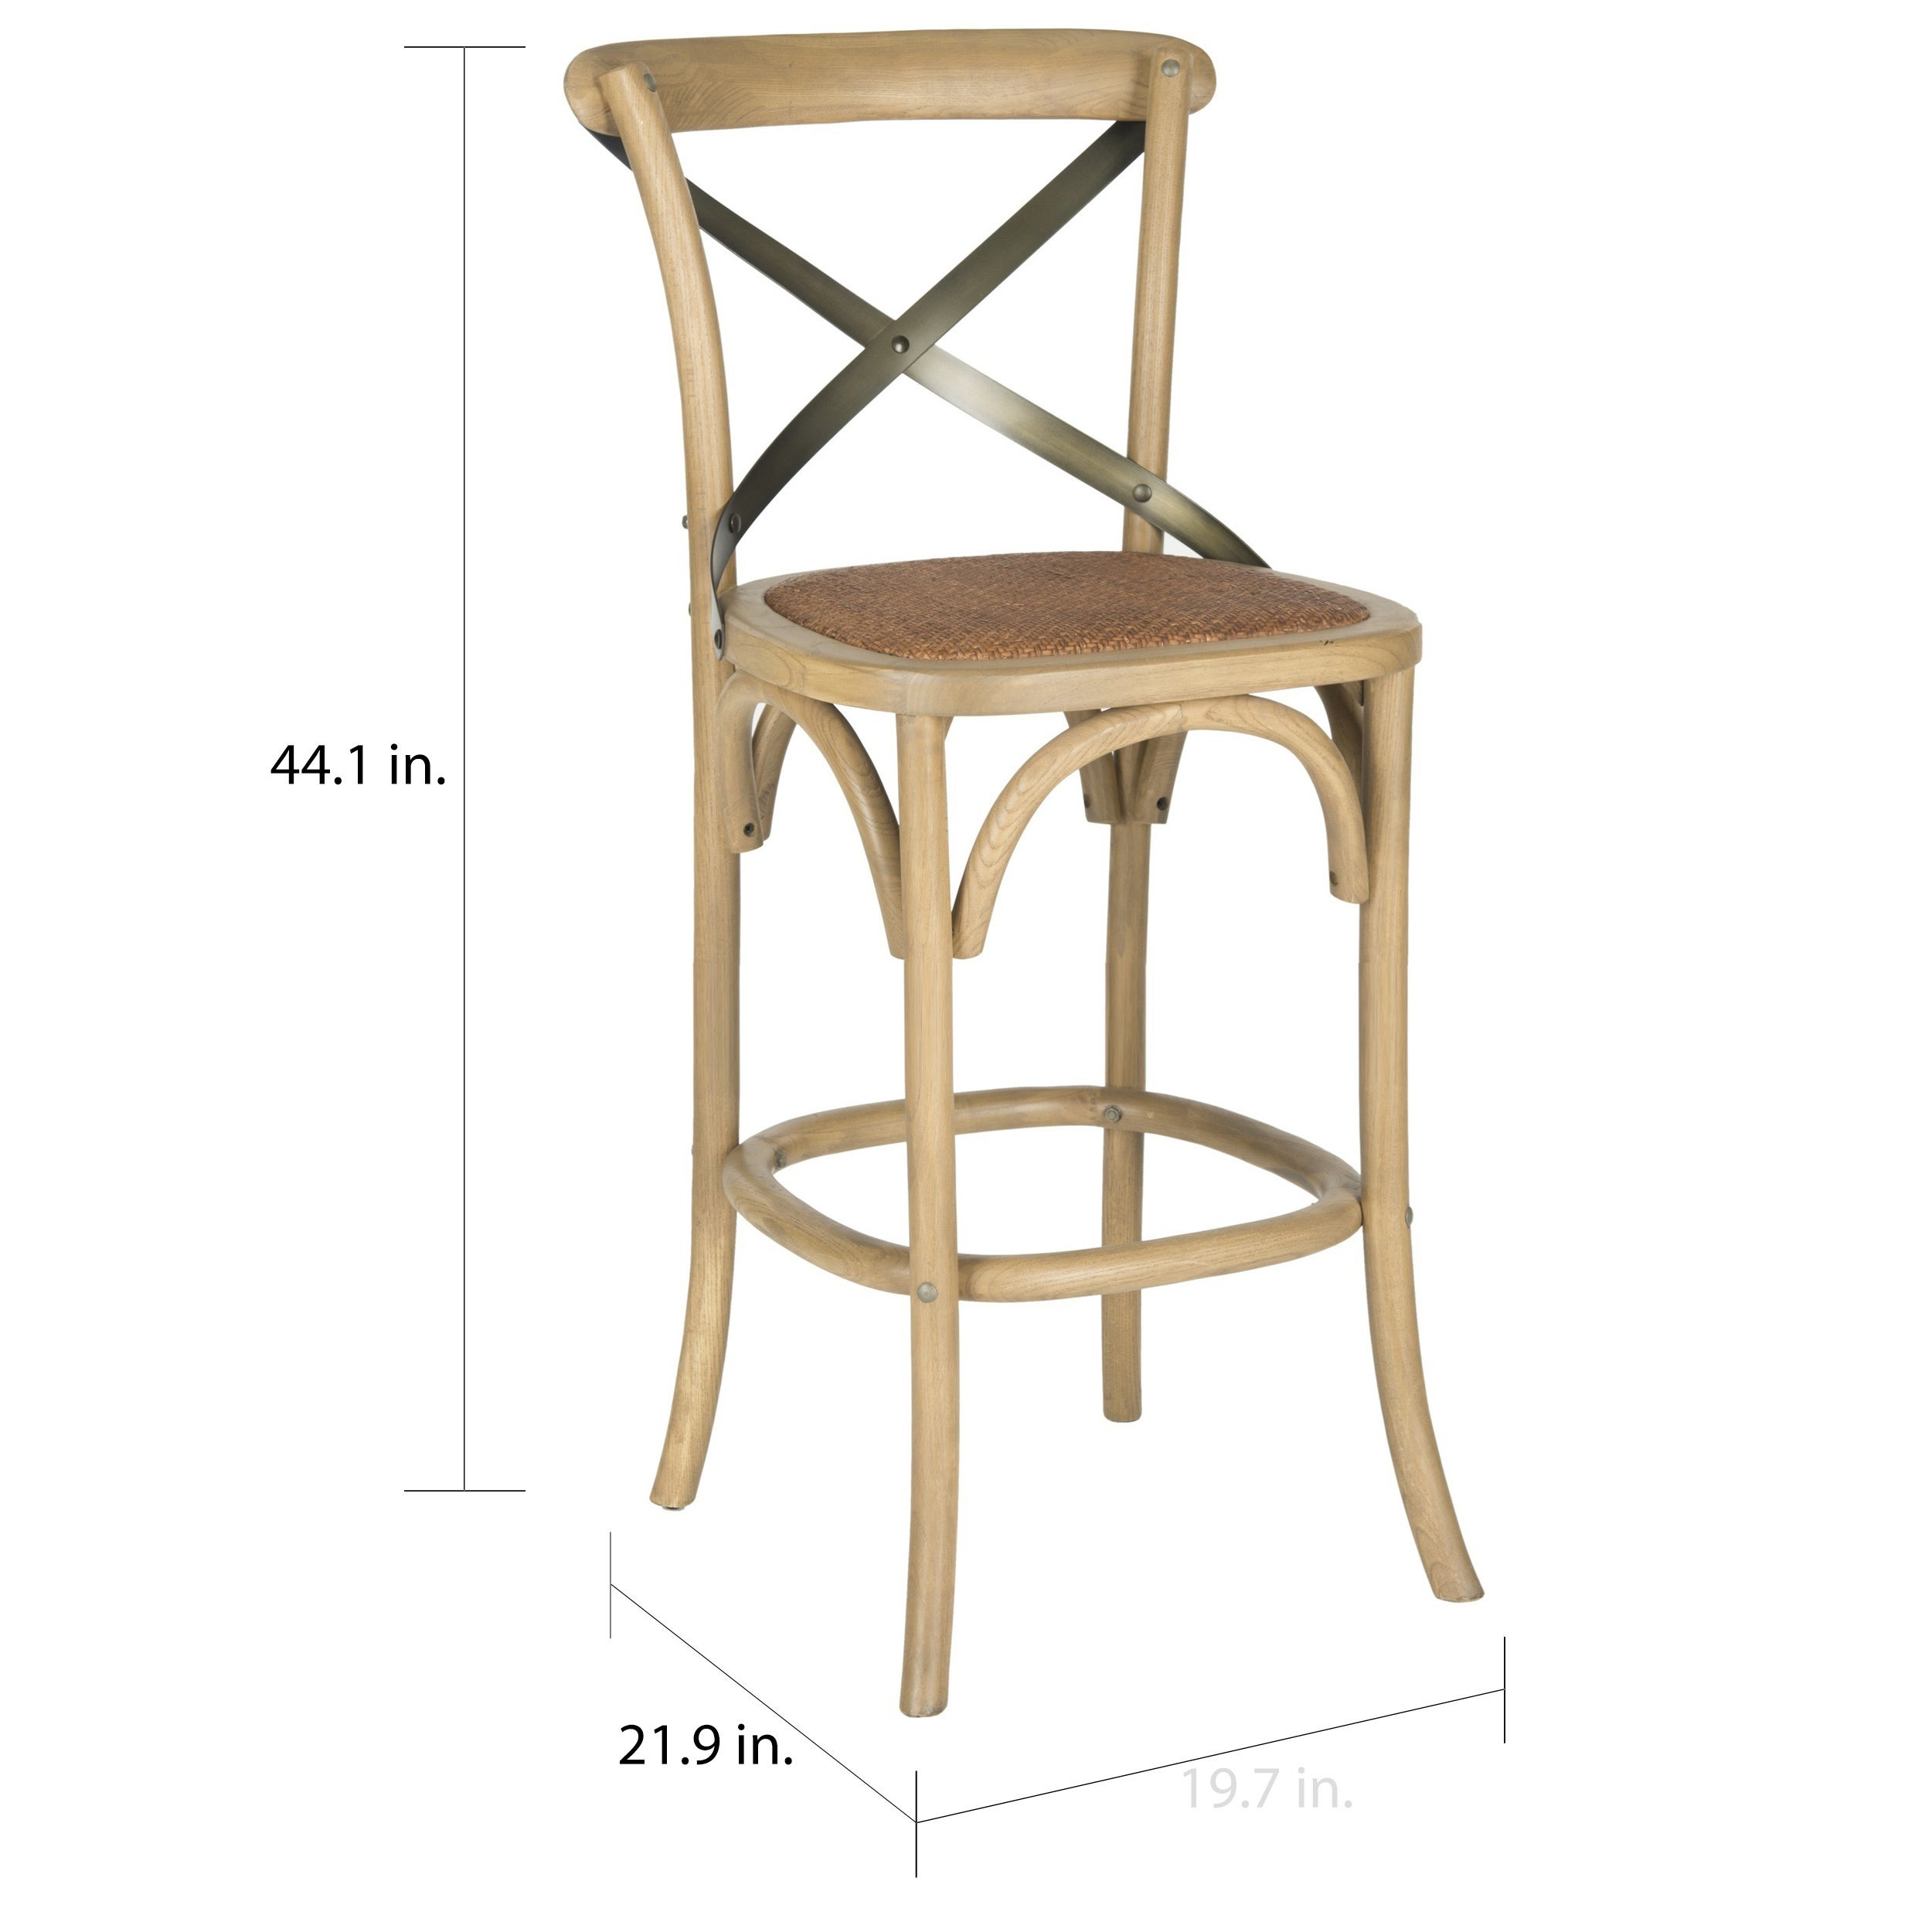 Marvelous Safavieh 30 7 Inch Eleanor Weathered Oak Bar Stool 20 1 X 20 1 X 43 7 Squirreltailoven Fun Painted Chair Ideas Images Squirreltailovenorg